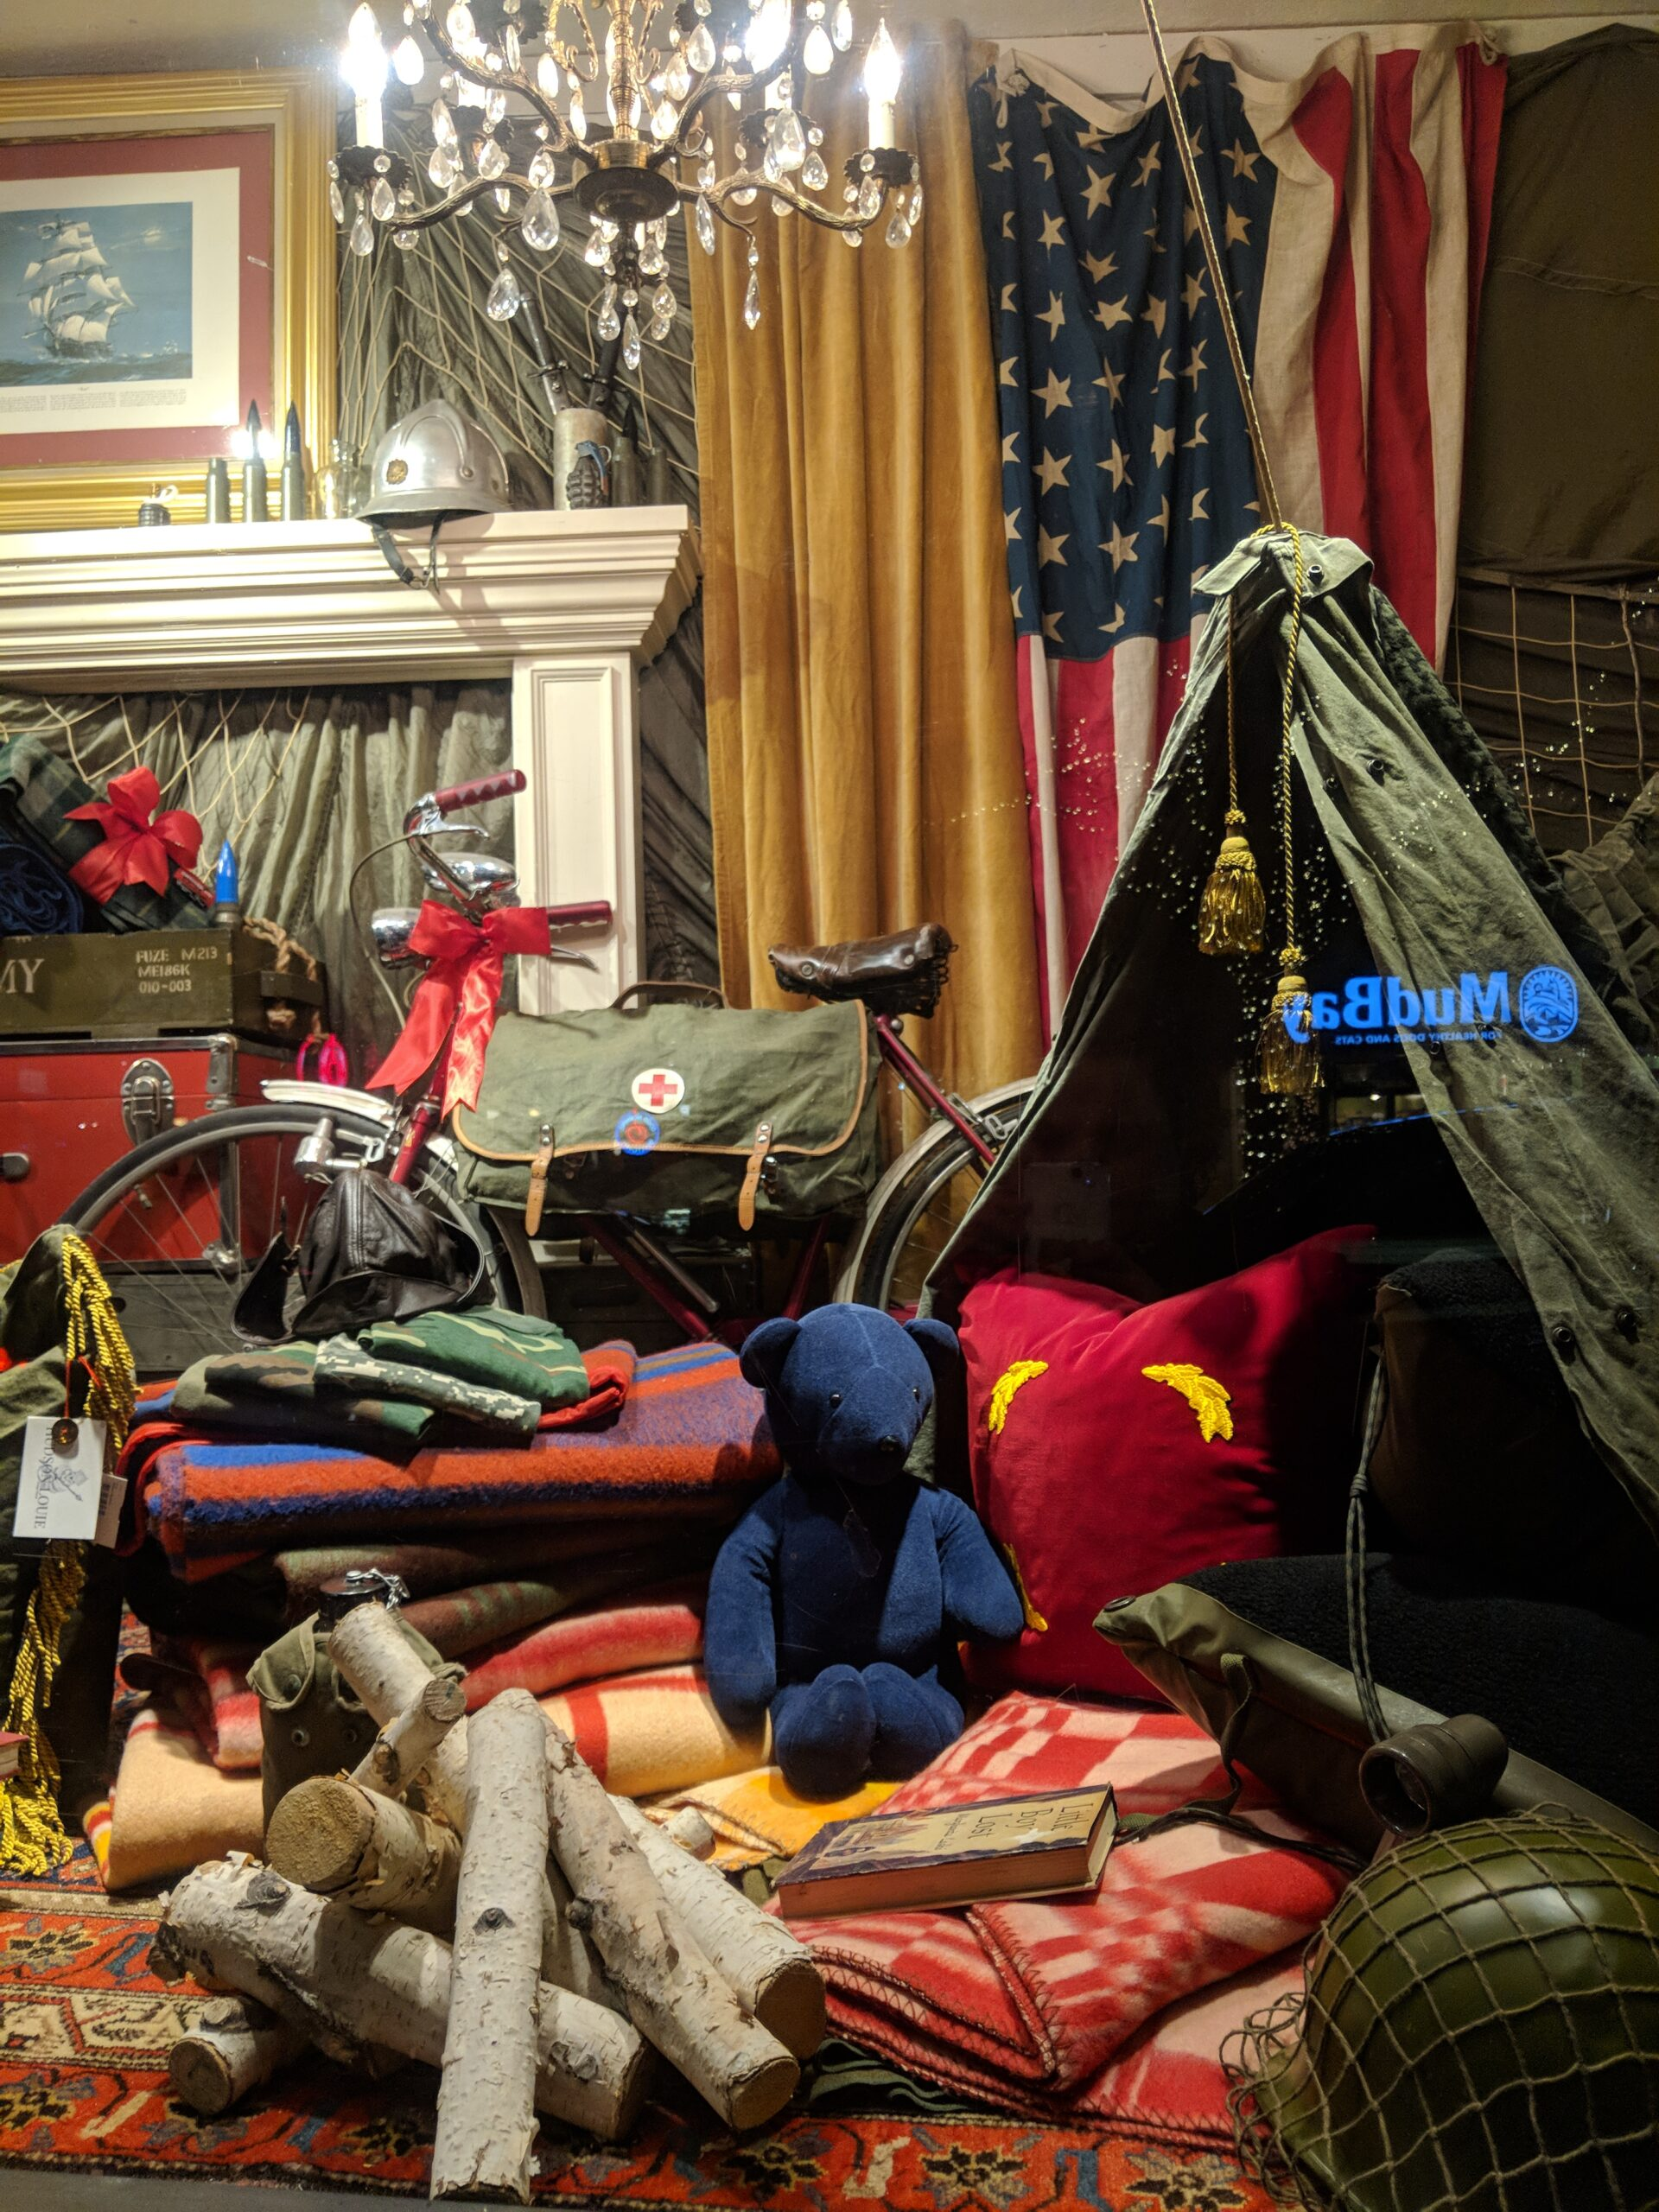 A christmas window display in seattle.